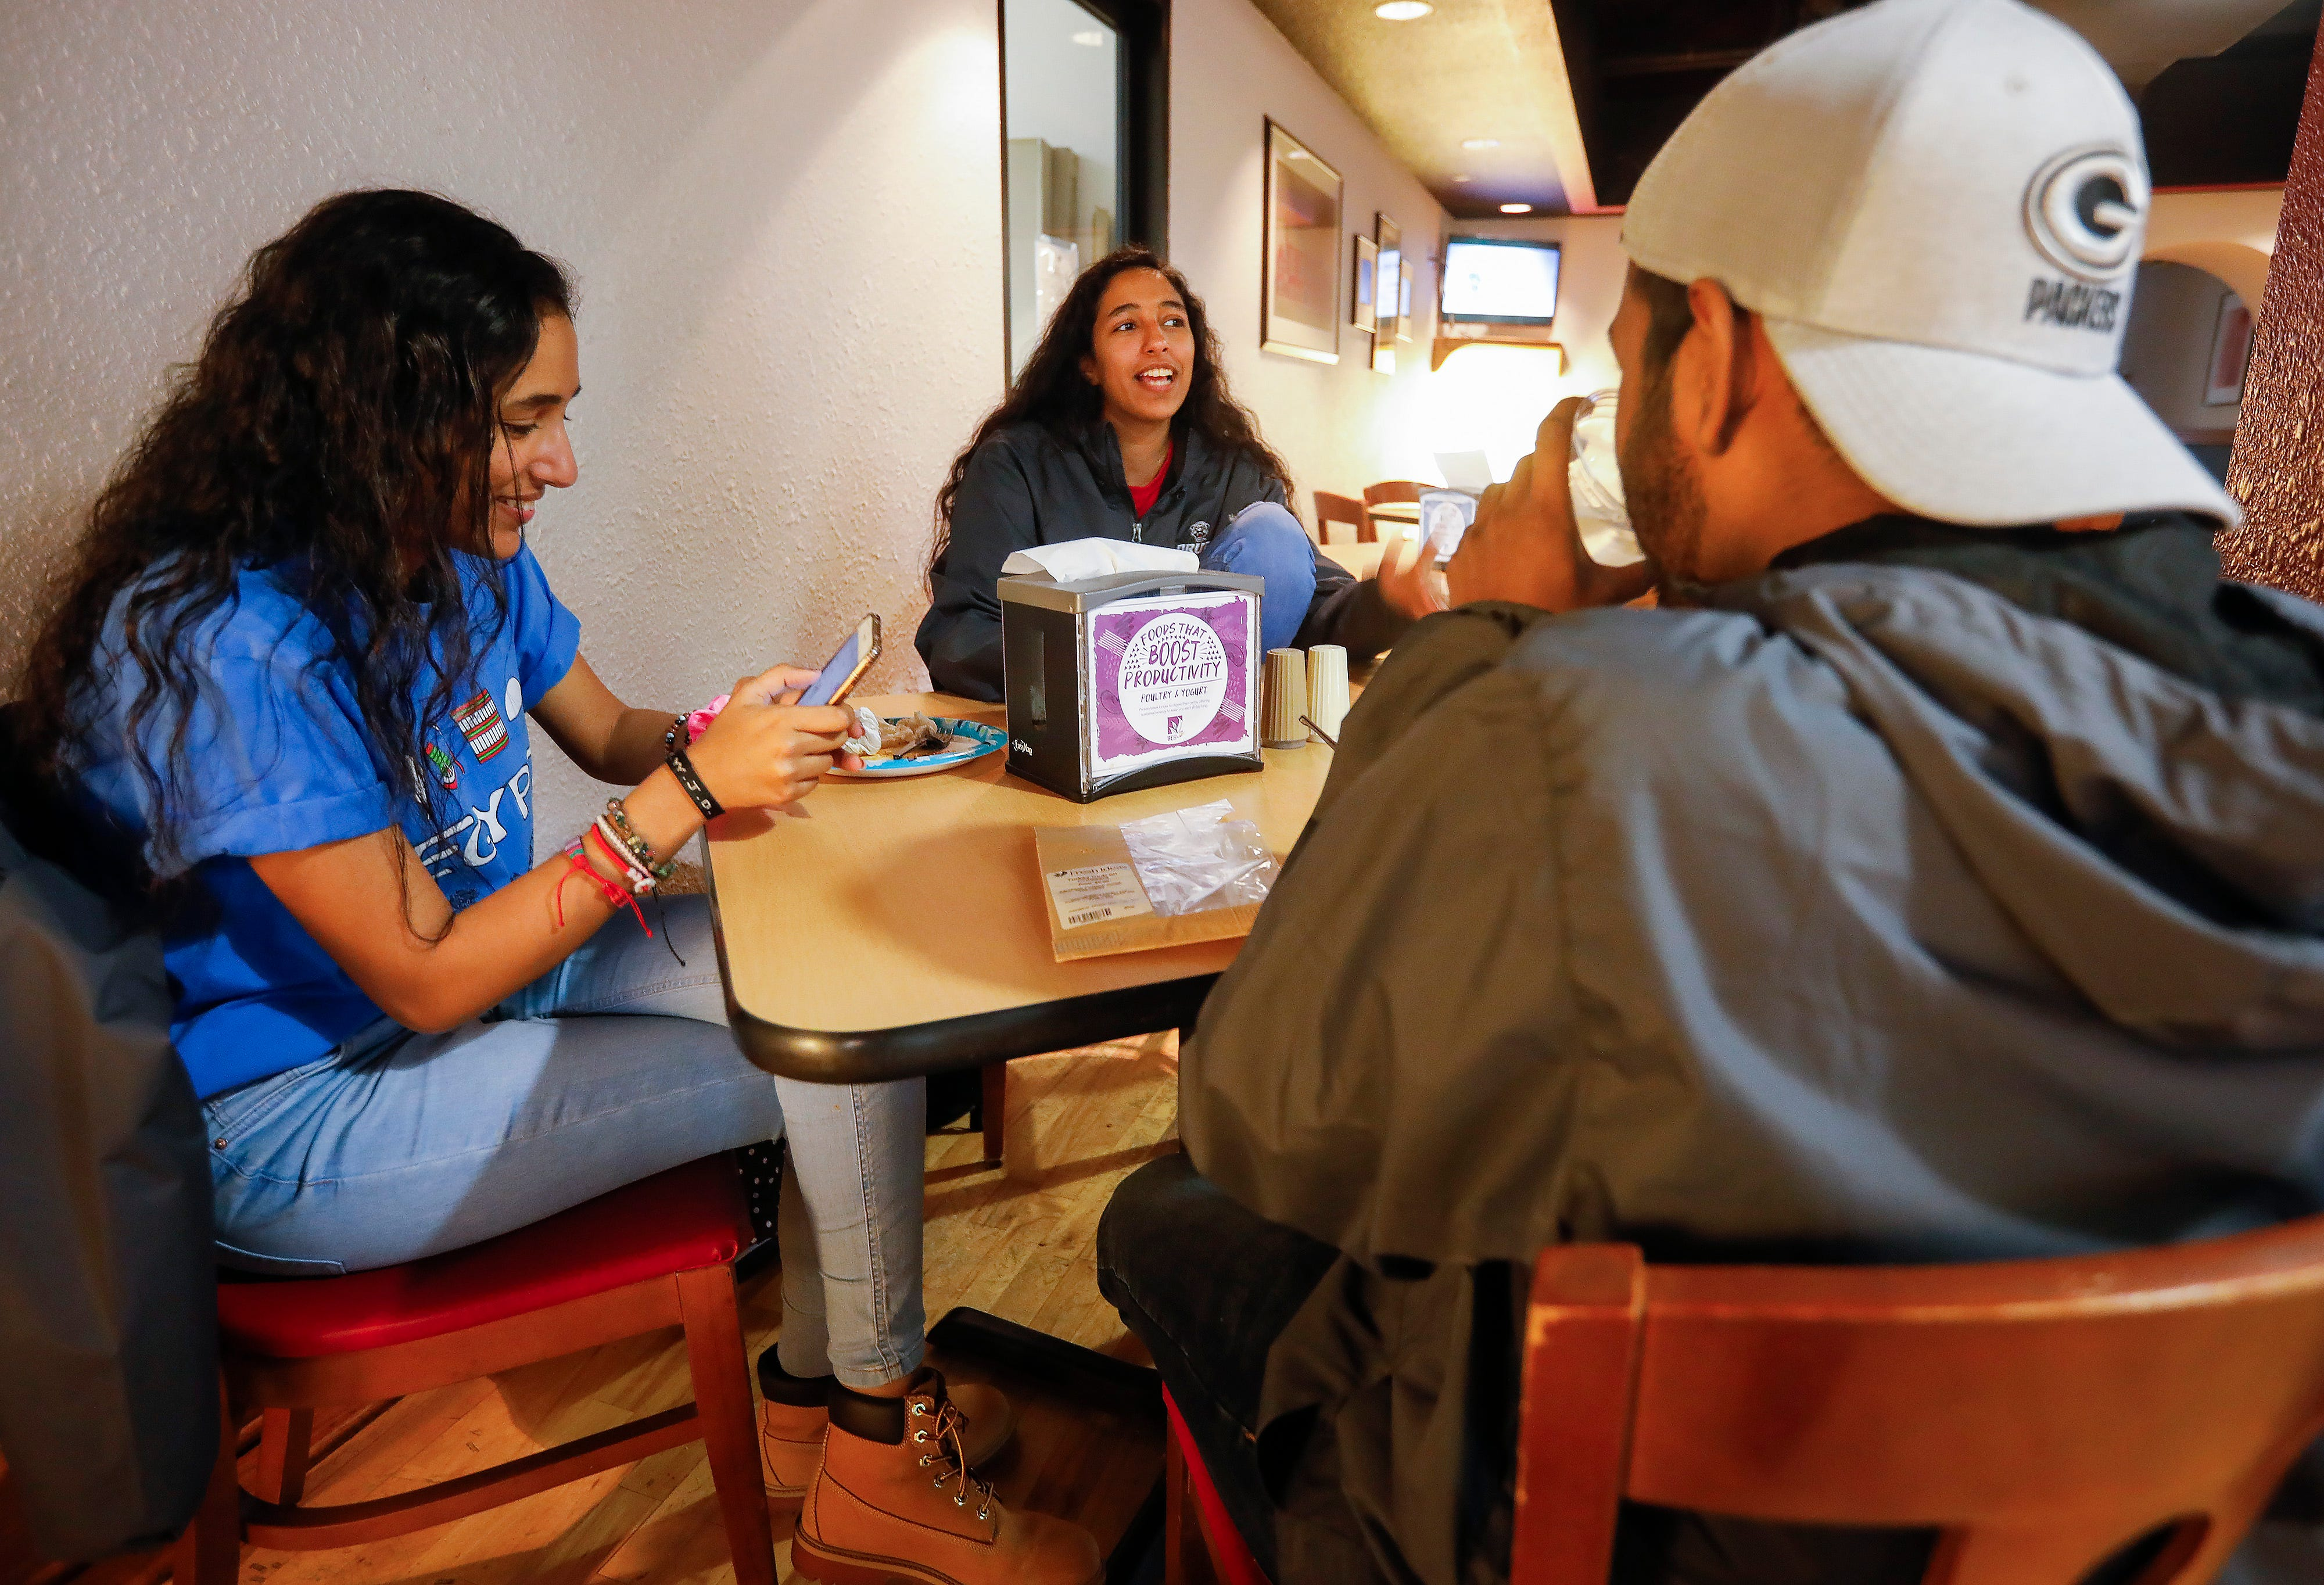 Velona, center, and Verna Tawfik, twin sisters from Egypt who are juniors at Drury University, eat lunch with their friend Naviinesh Gunalan on Thursday, April 18, 2019.